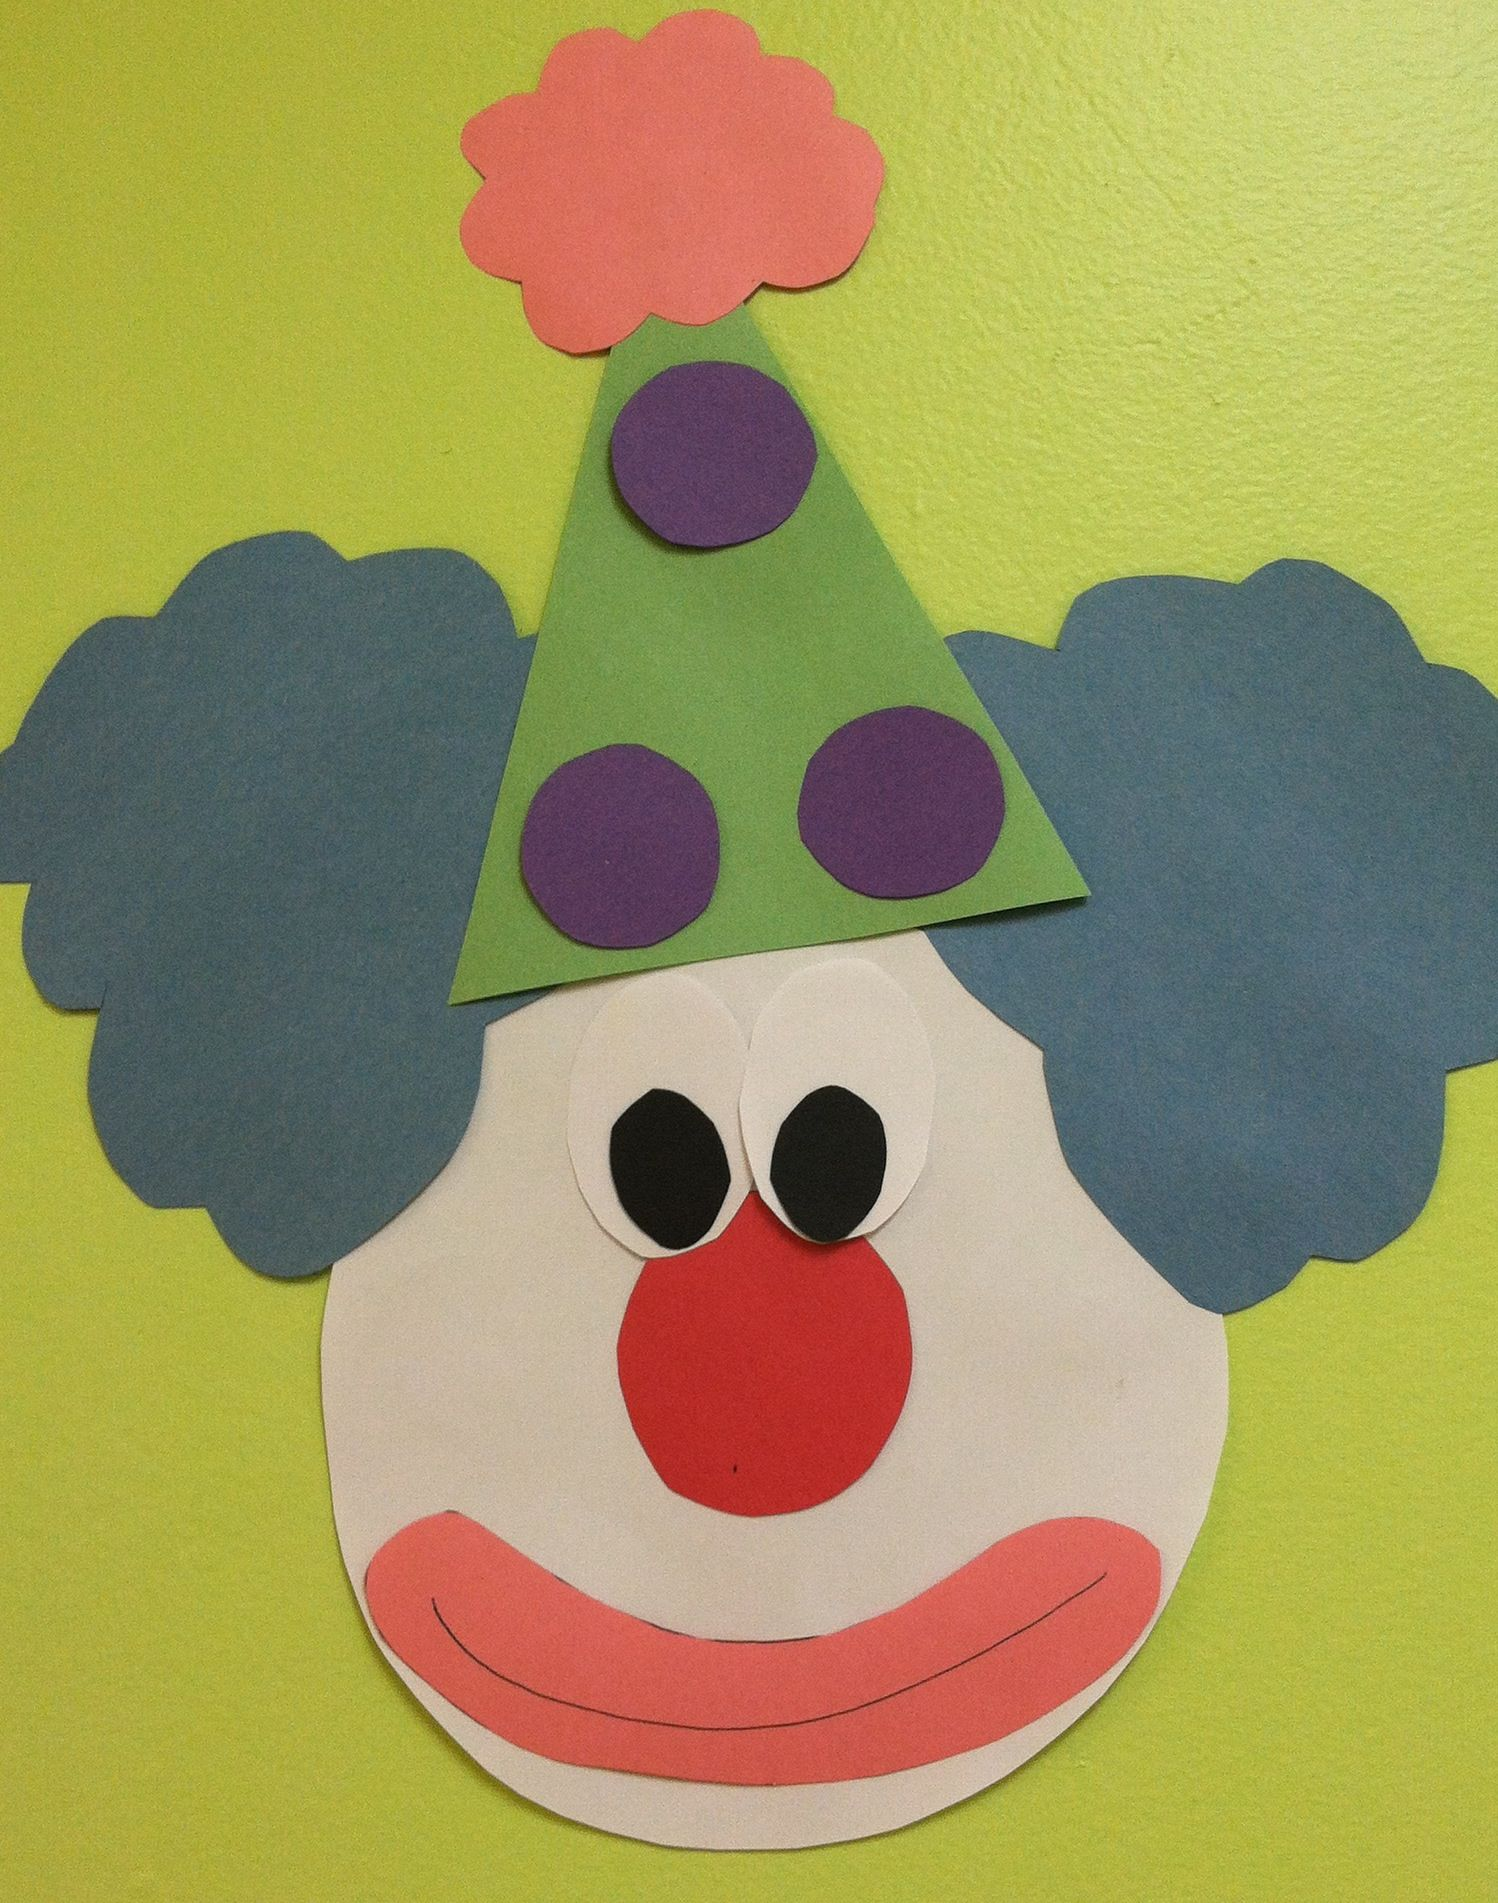 Clown Face Decoration Or Craft For Preschool Craft Not